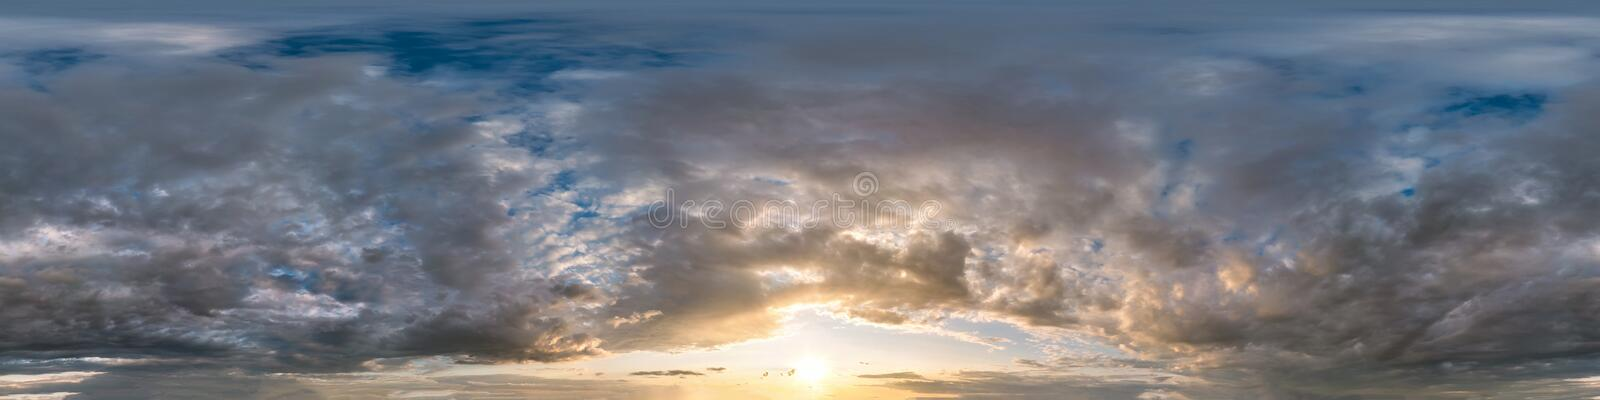 Dark sky before sunset with beautiful awesome clouds. Seamless hdri panorama 360 degrees angle view  with zenith for use in 3d. Graphics or game development as stock images